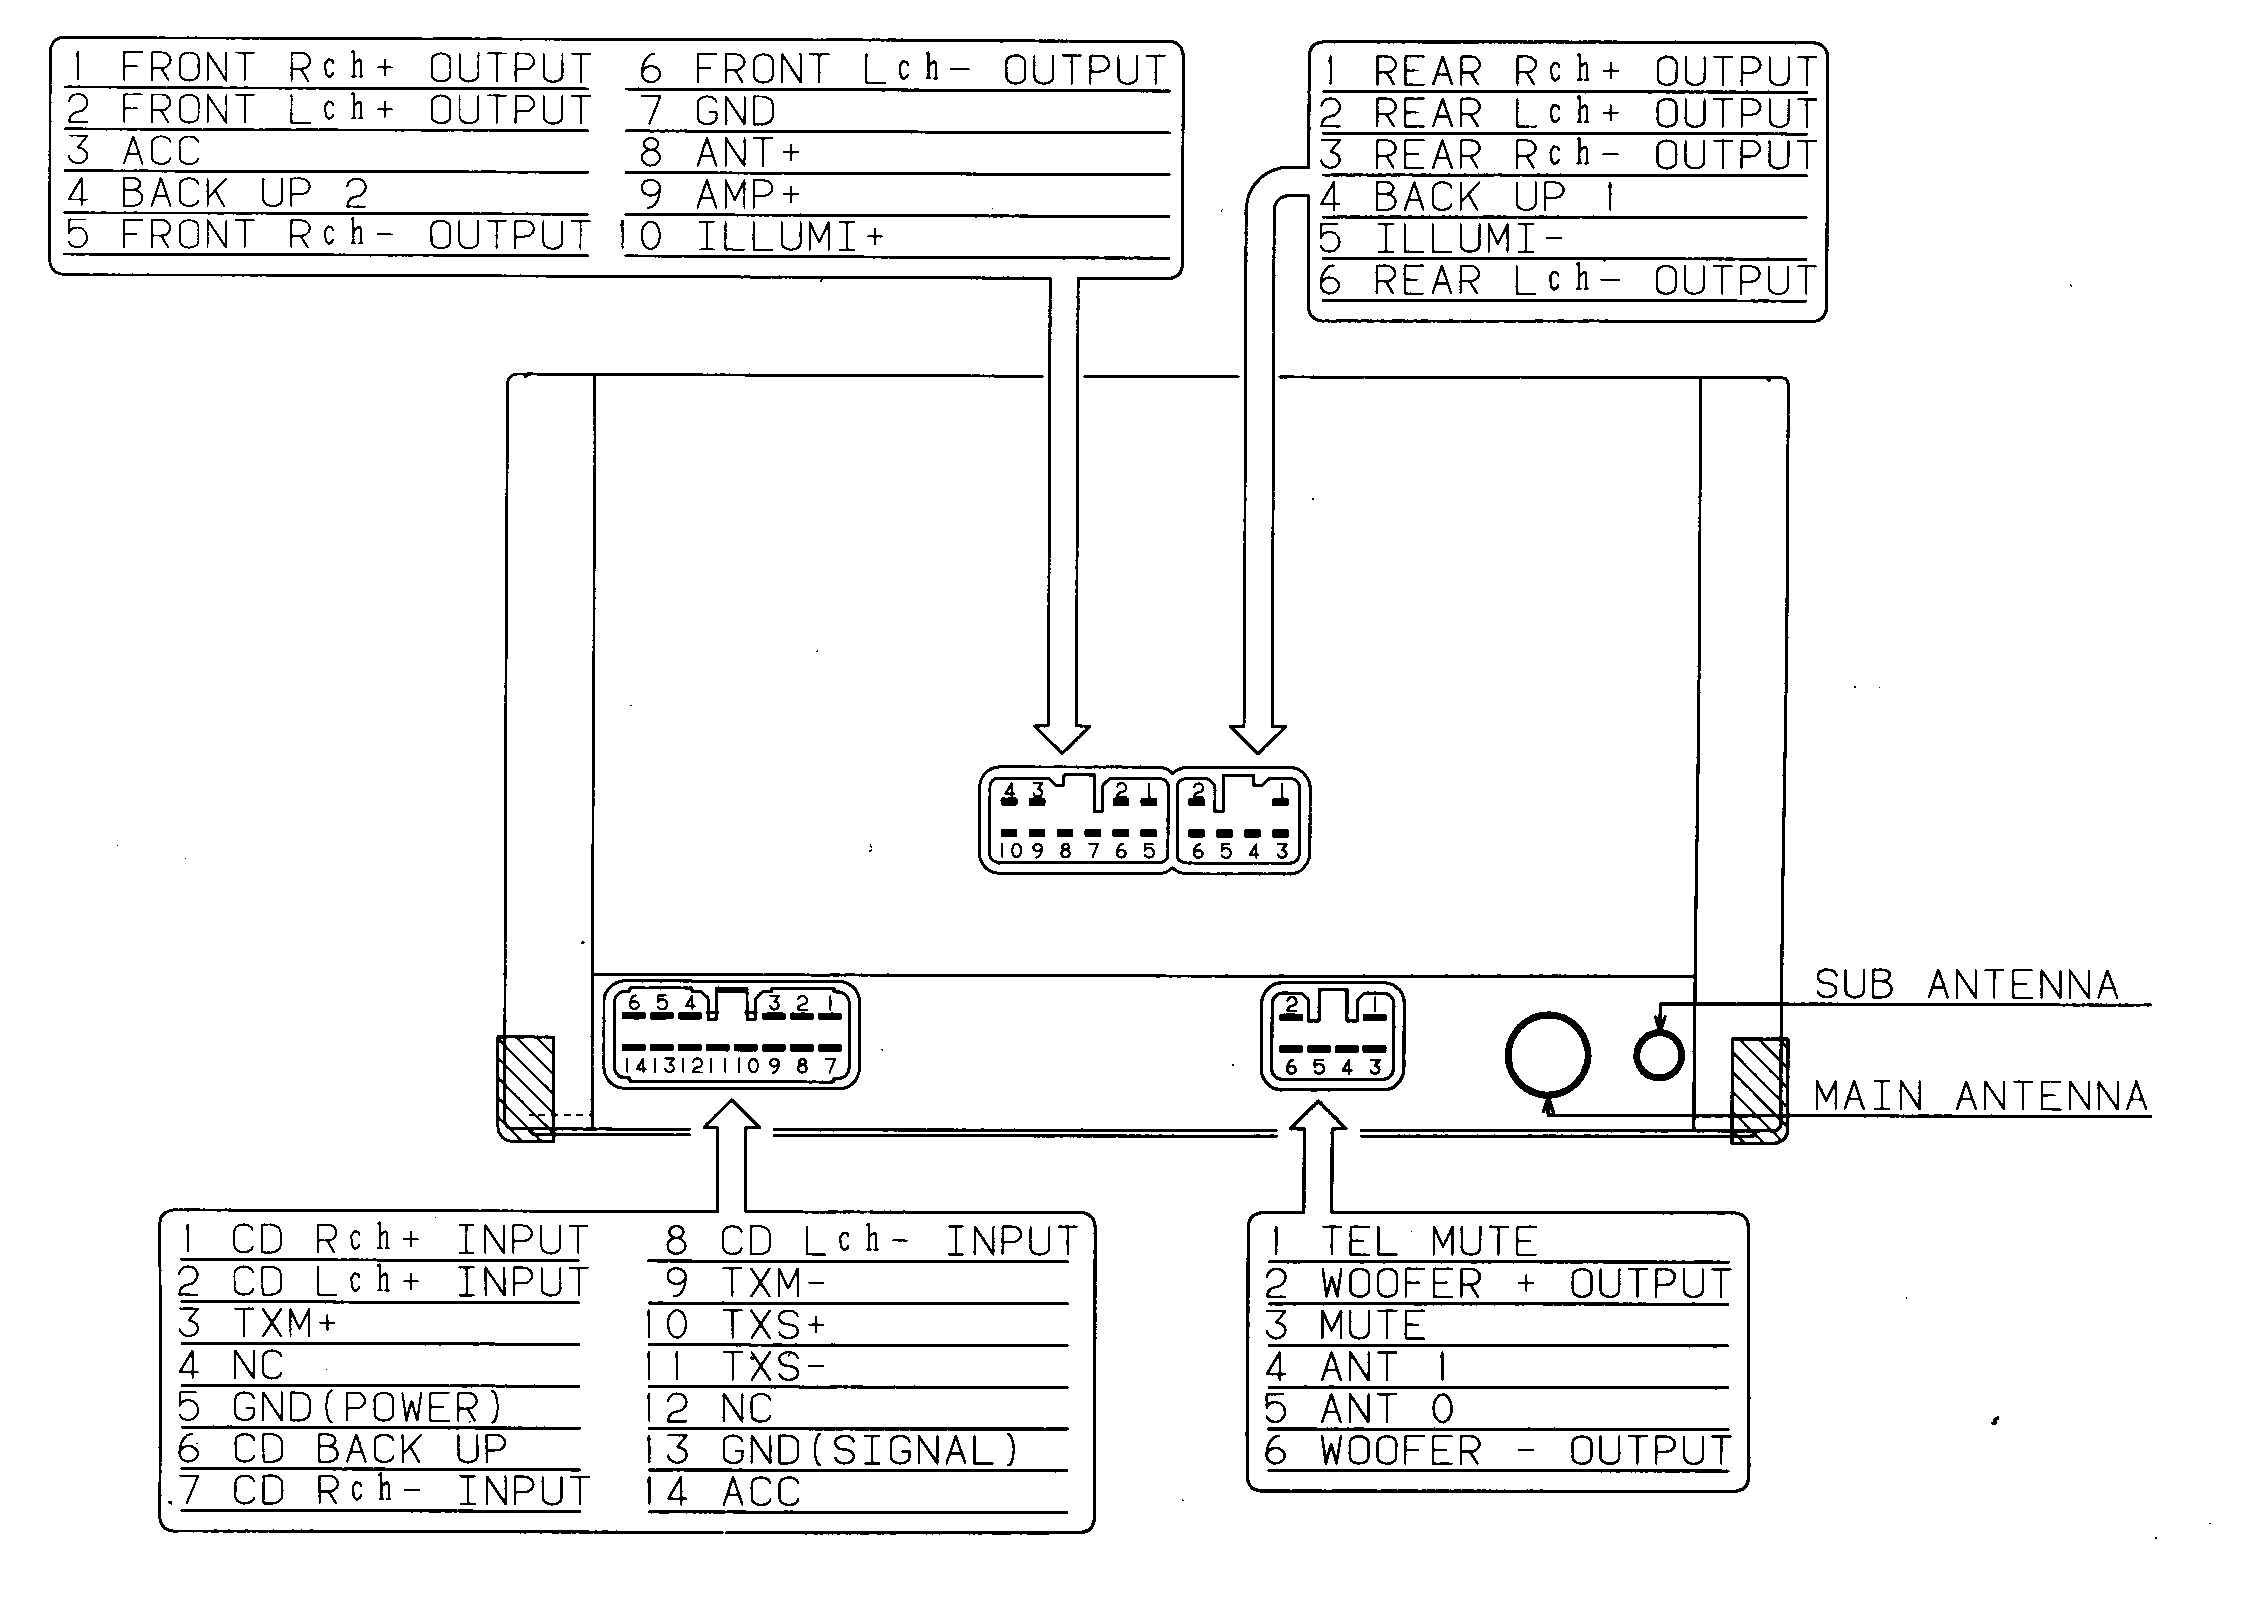 2006 Lincoln Mark Lt Radio Wiring Diagram Archive Of Automotive 2002 Ls Car Schematics Rh Thyl Co Uk